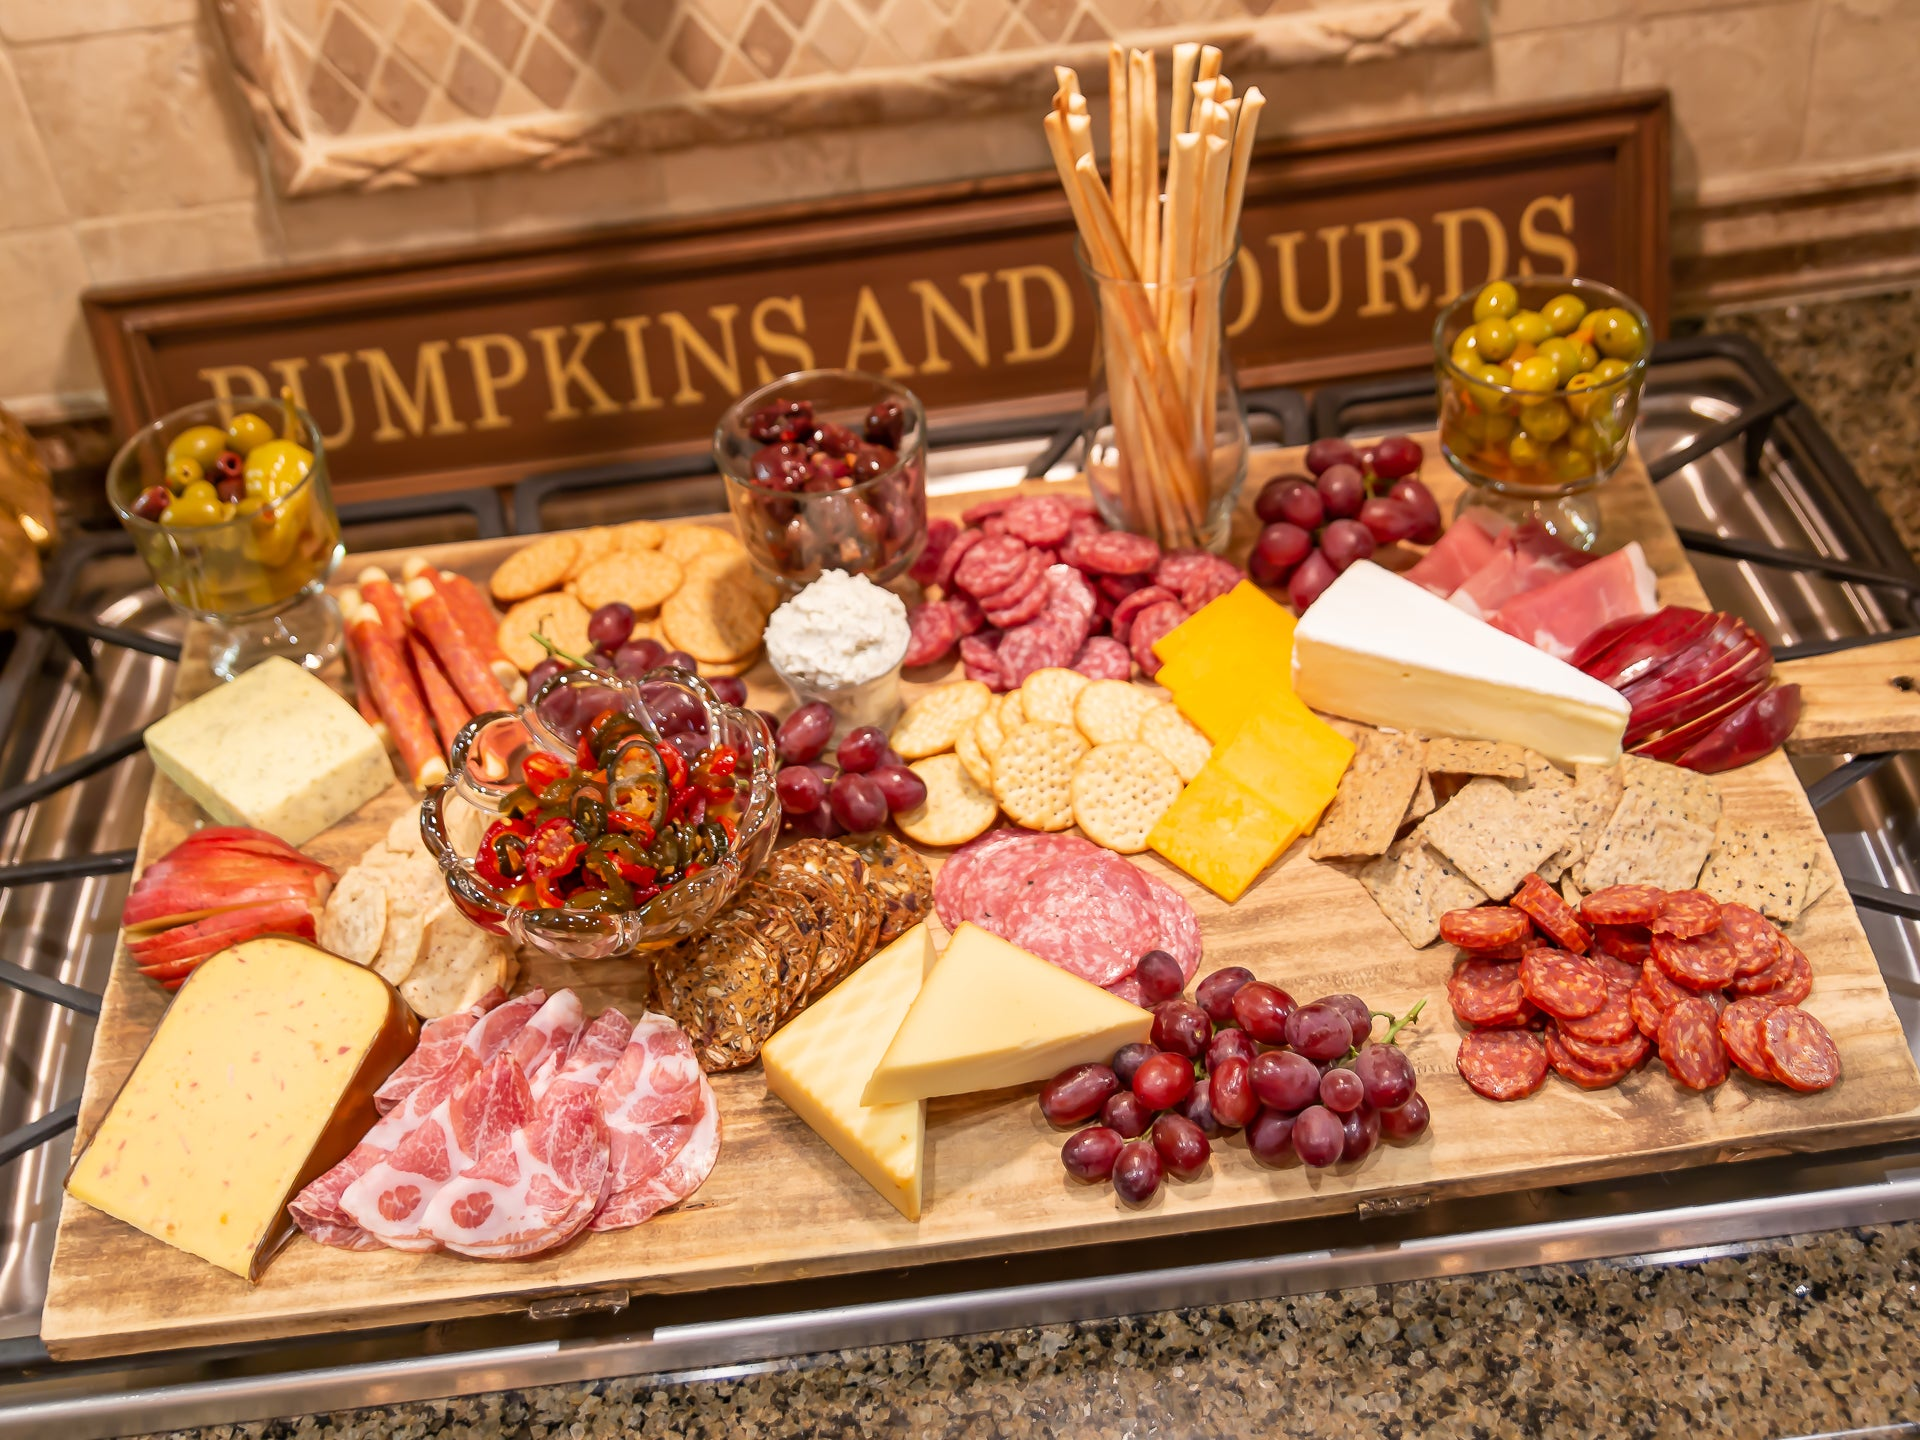 Friendsgiving charcuterie board